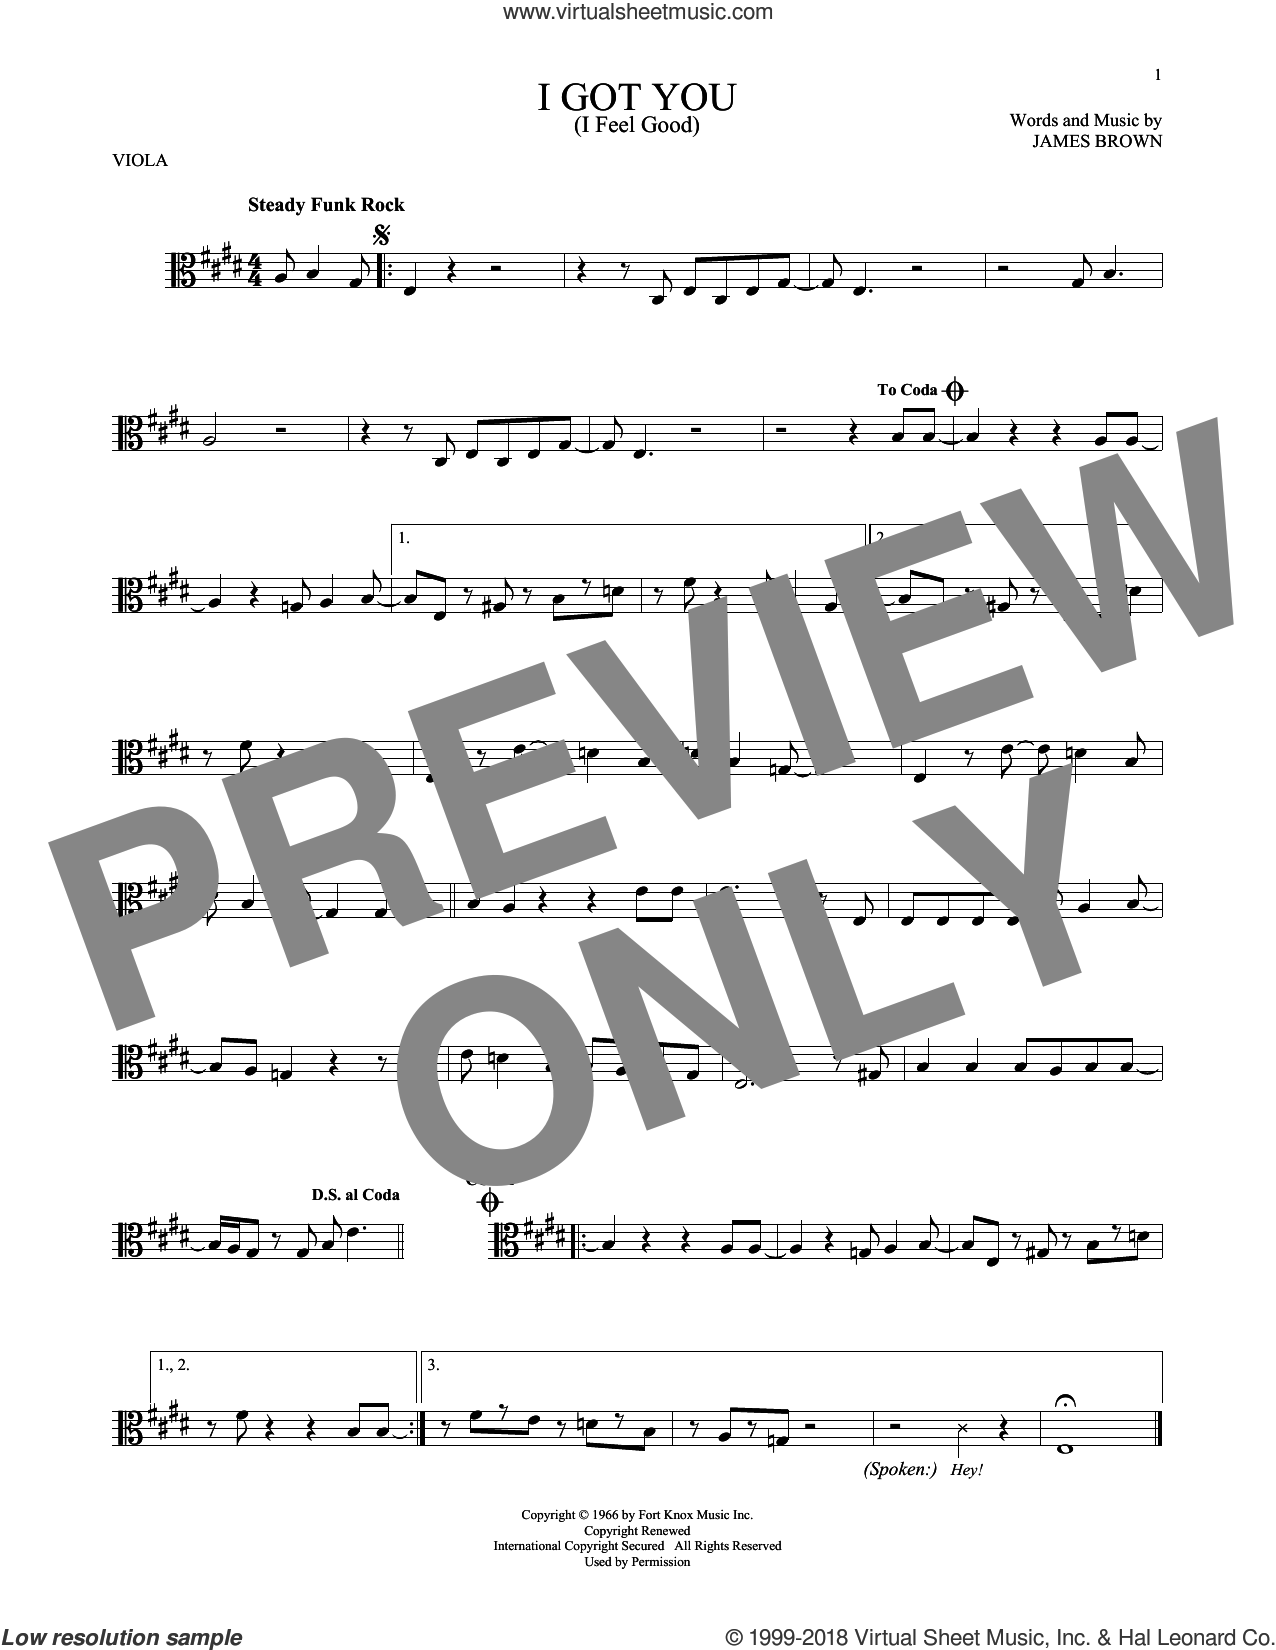 I Got You (I Feel Good) sheet music for viola solo by James Brown, intermediate skill level